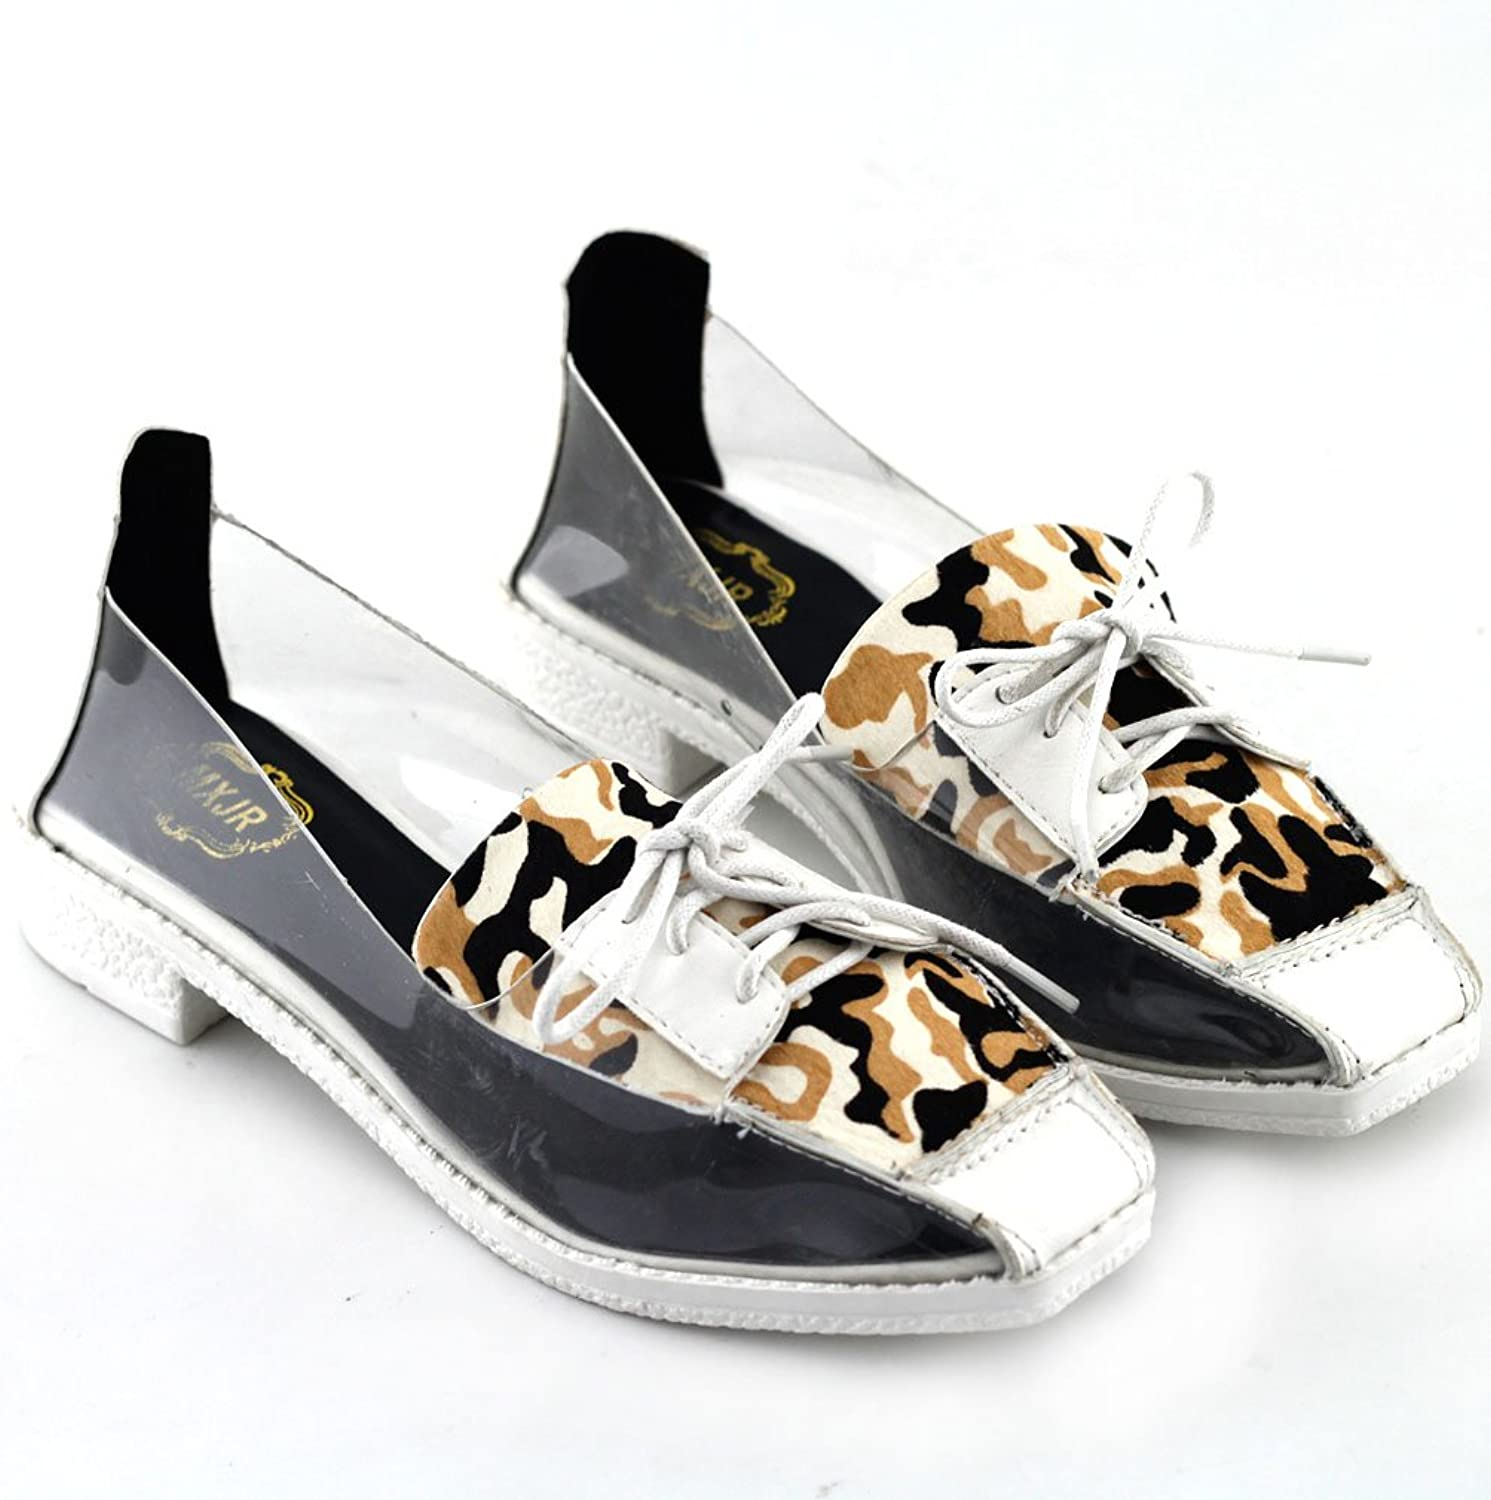 Show Story Leopard Print Clear Lace-up Square Toe Low Heels Casual shoes,QT78F12